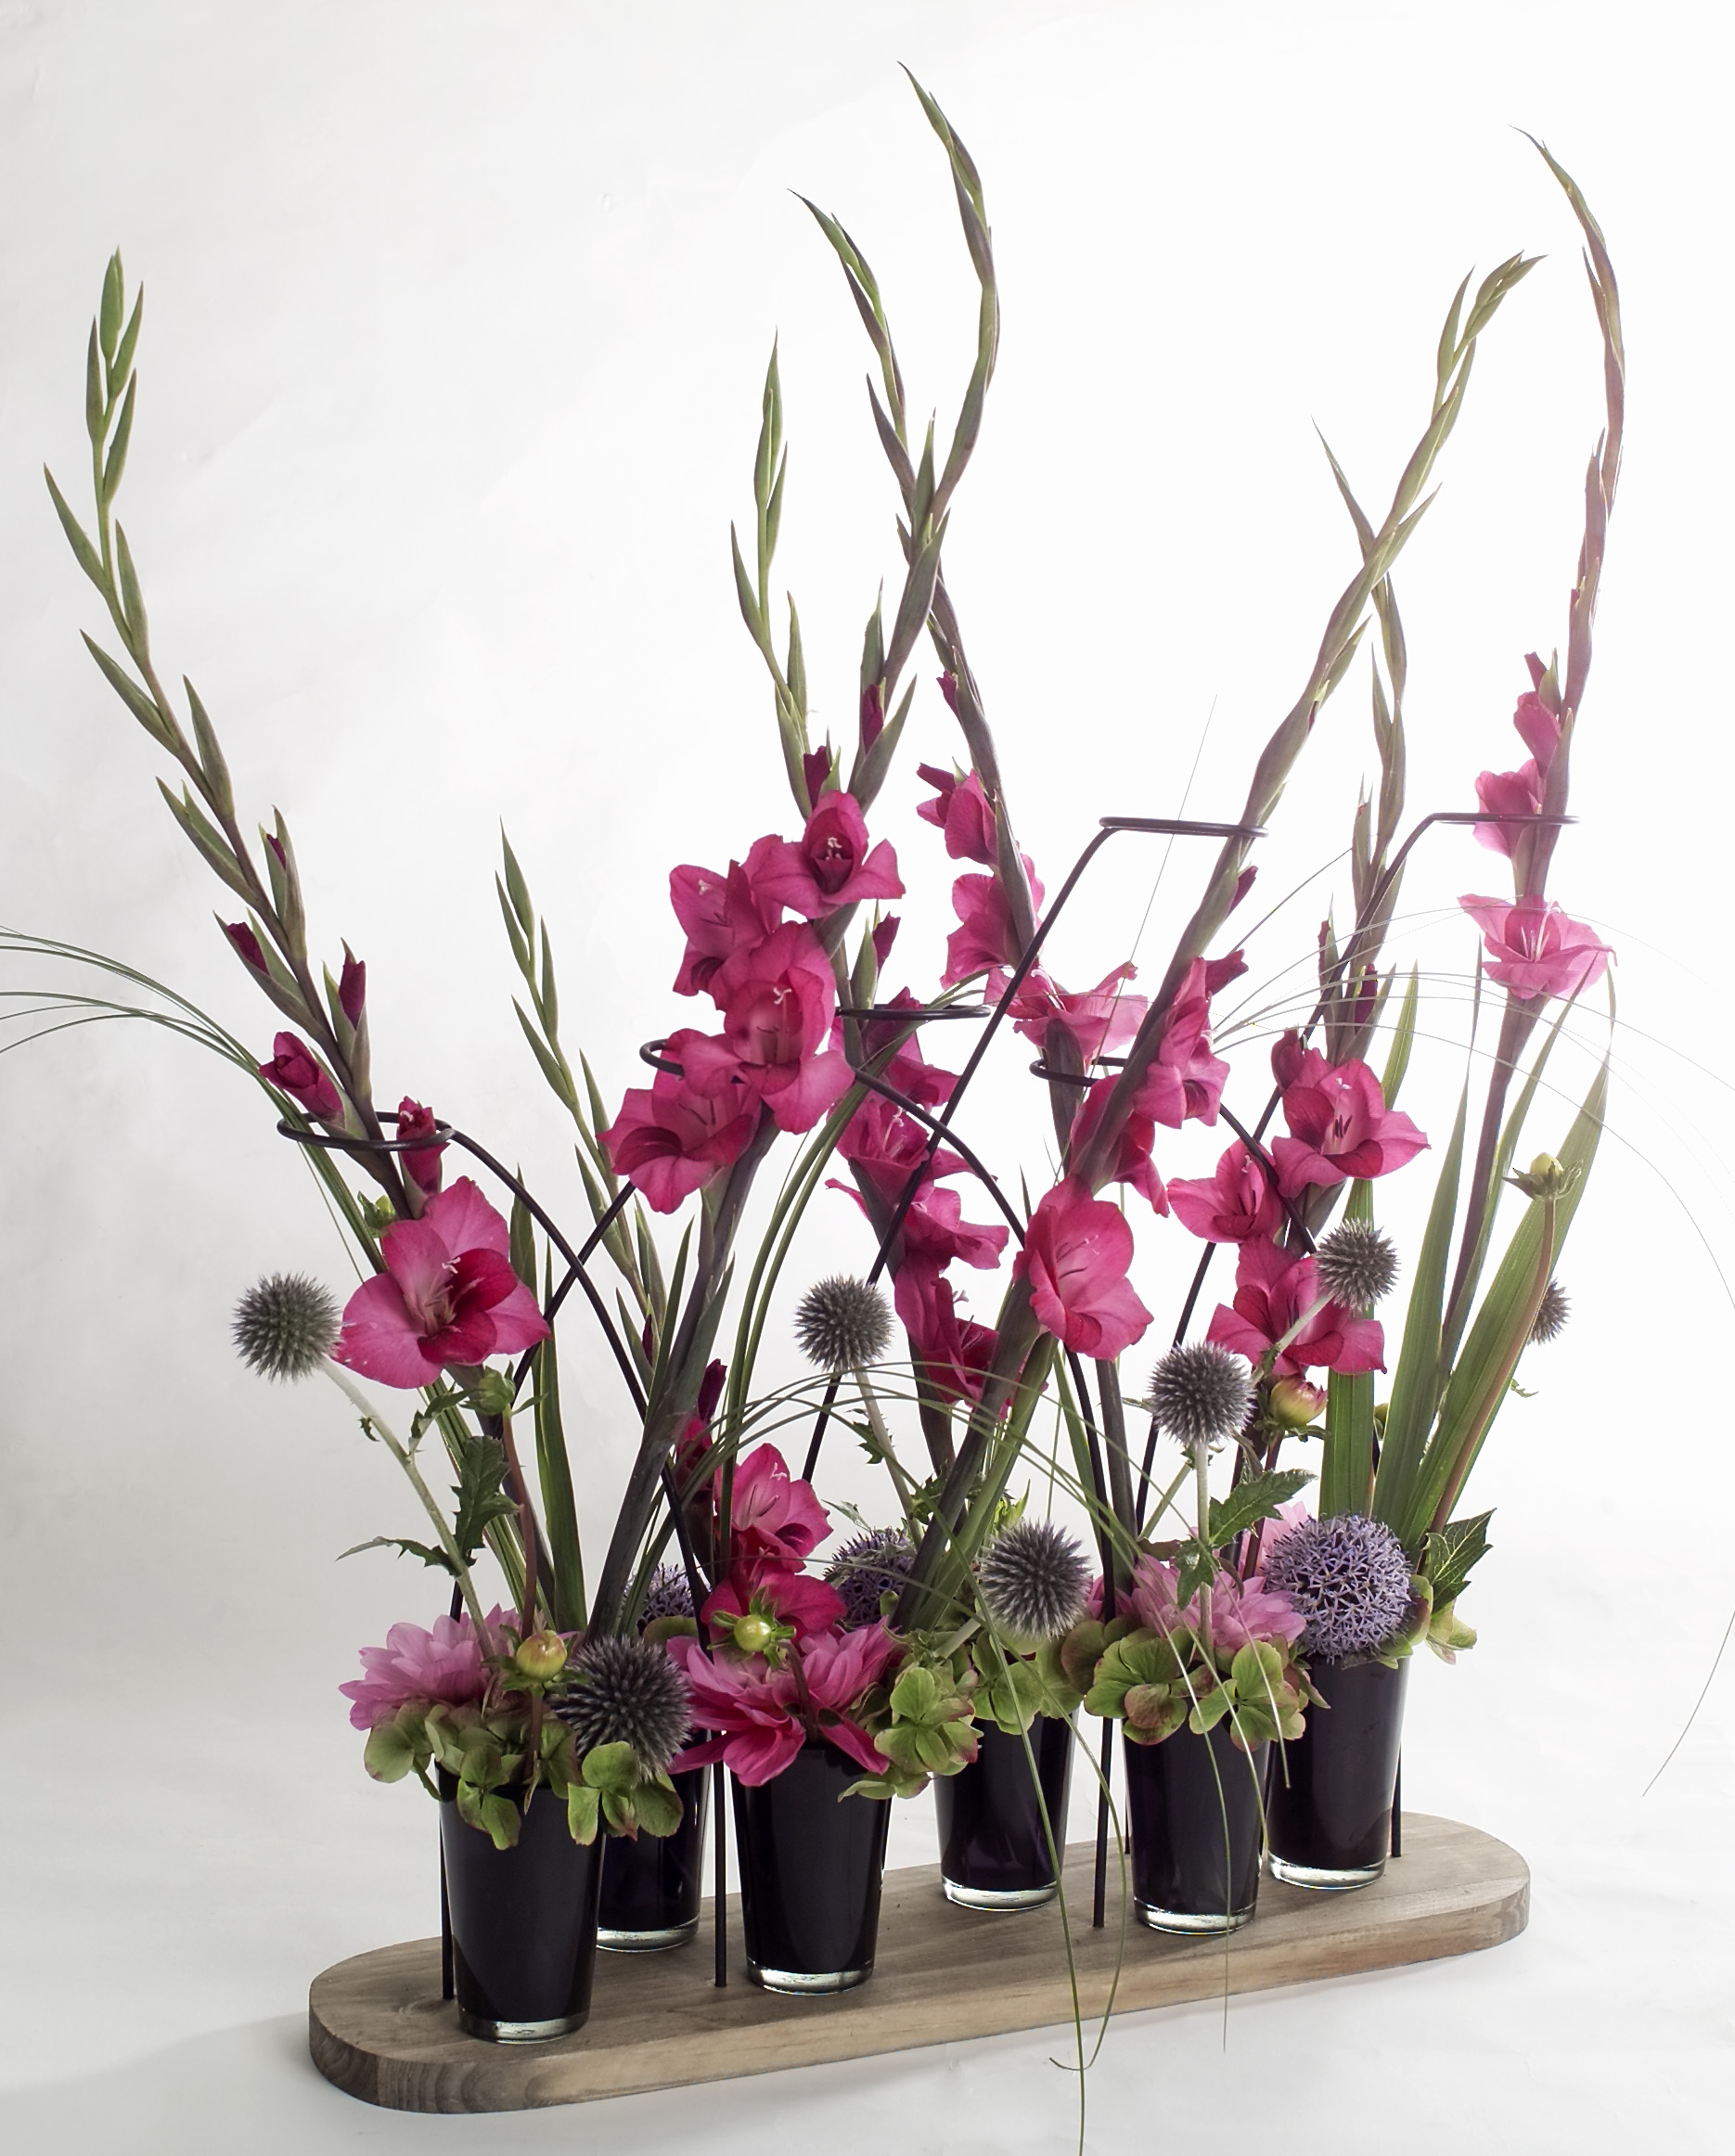 Bien-aimé Gladiolus: The hero among the flowers - Bloomifique TO14